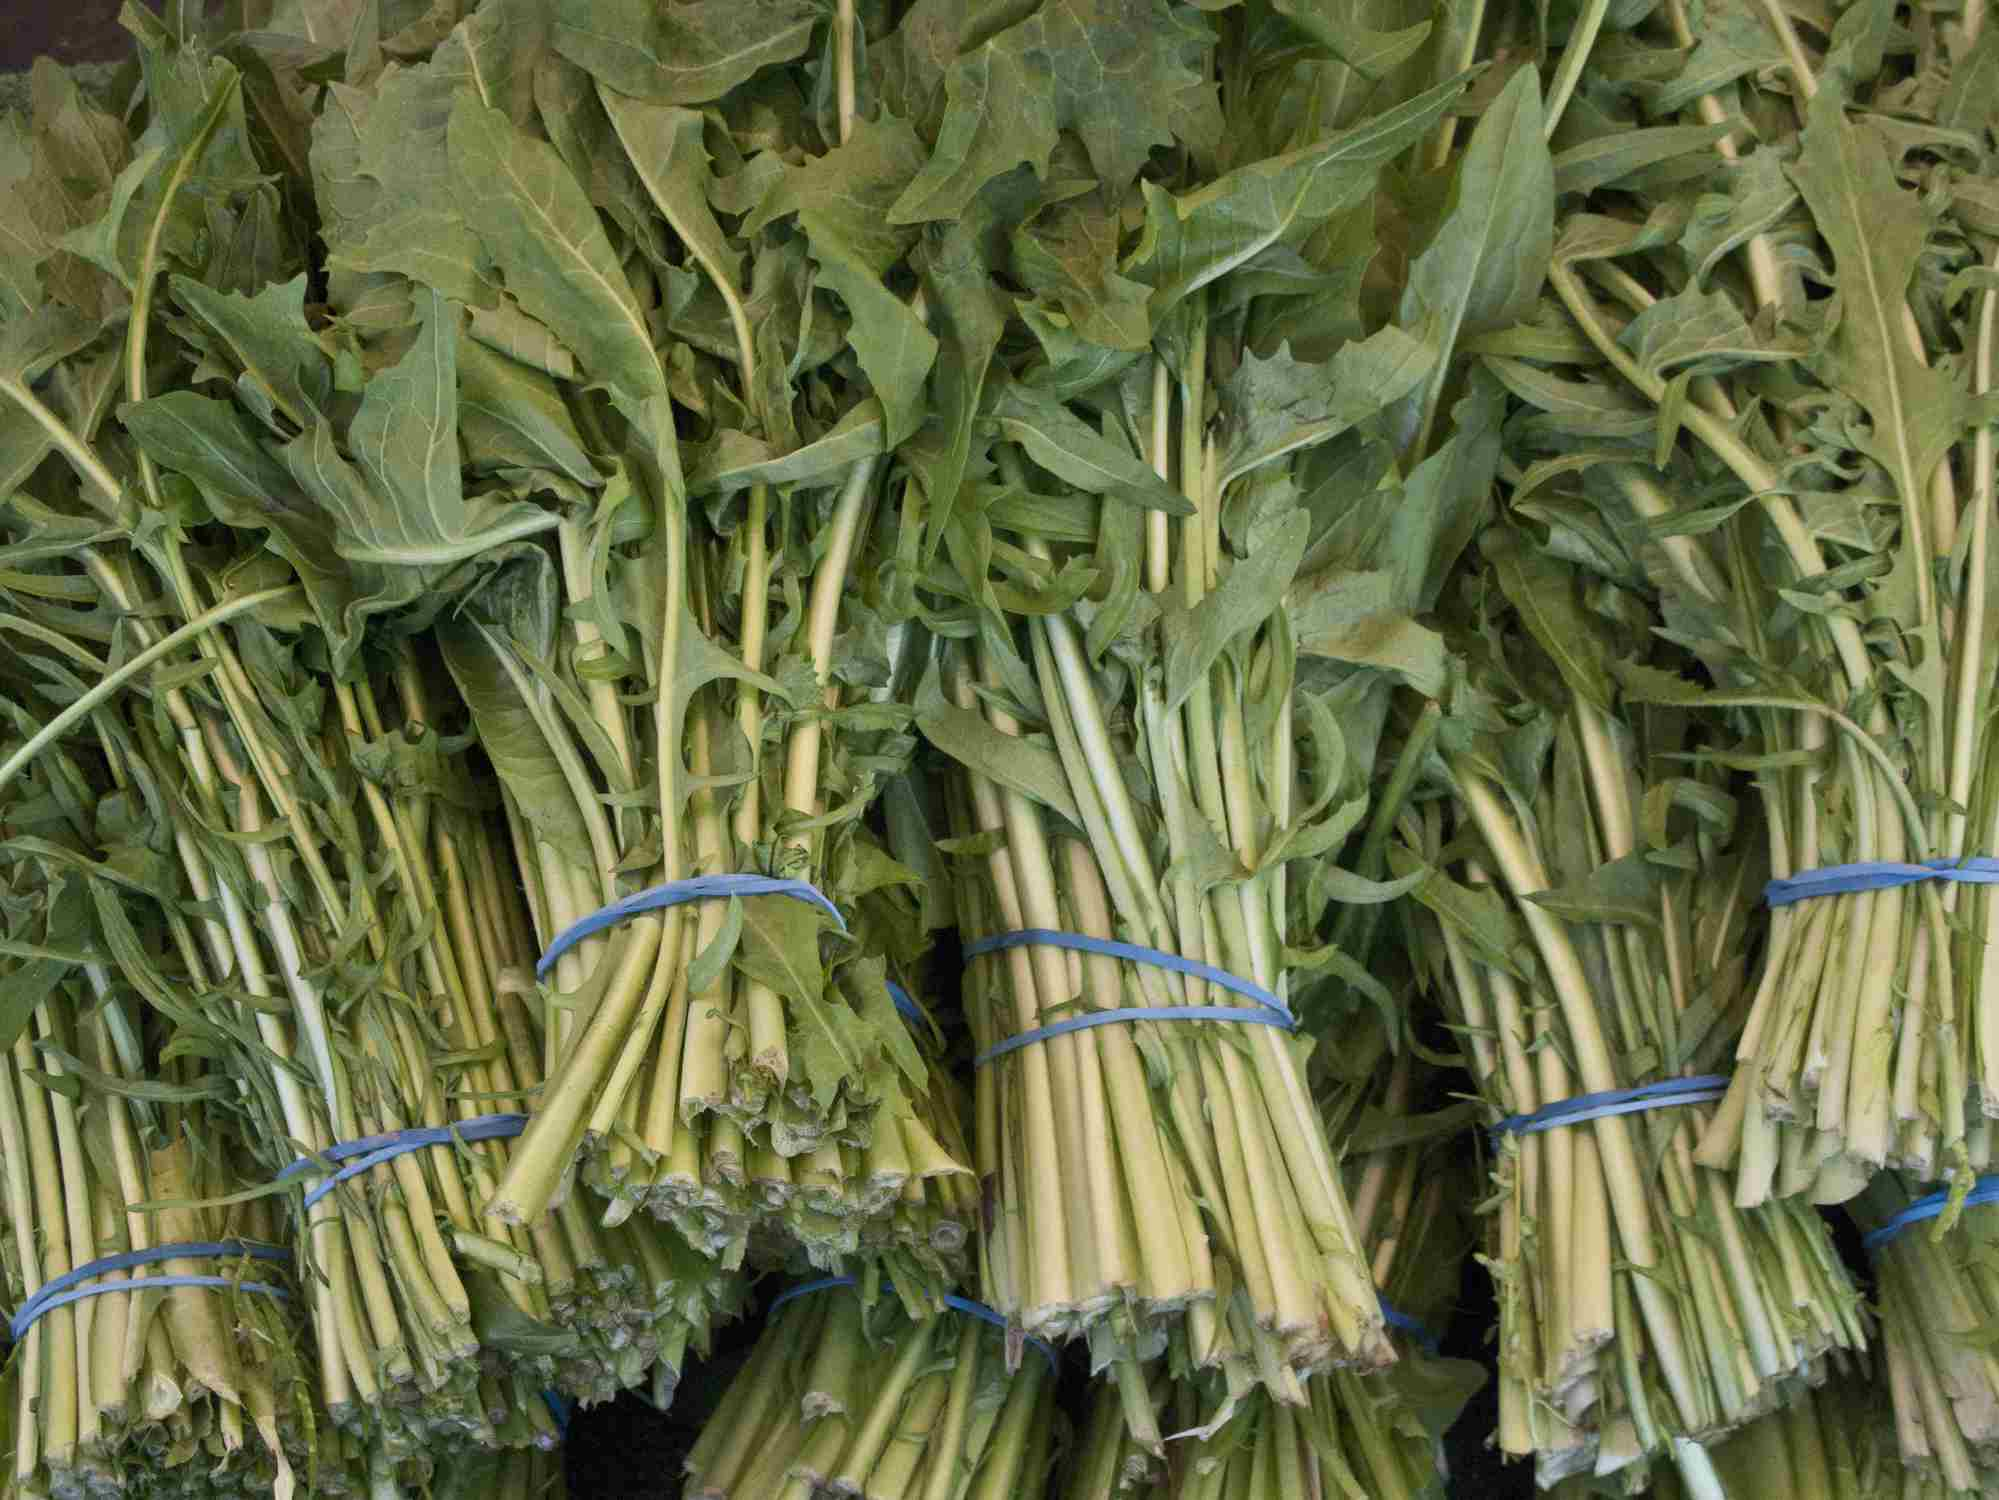 Bunches of Dandelion at Farmers Market